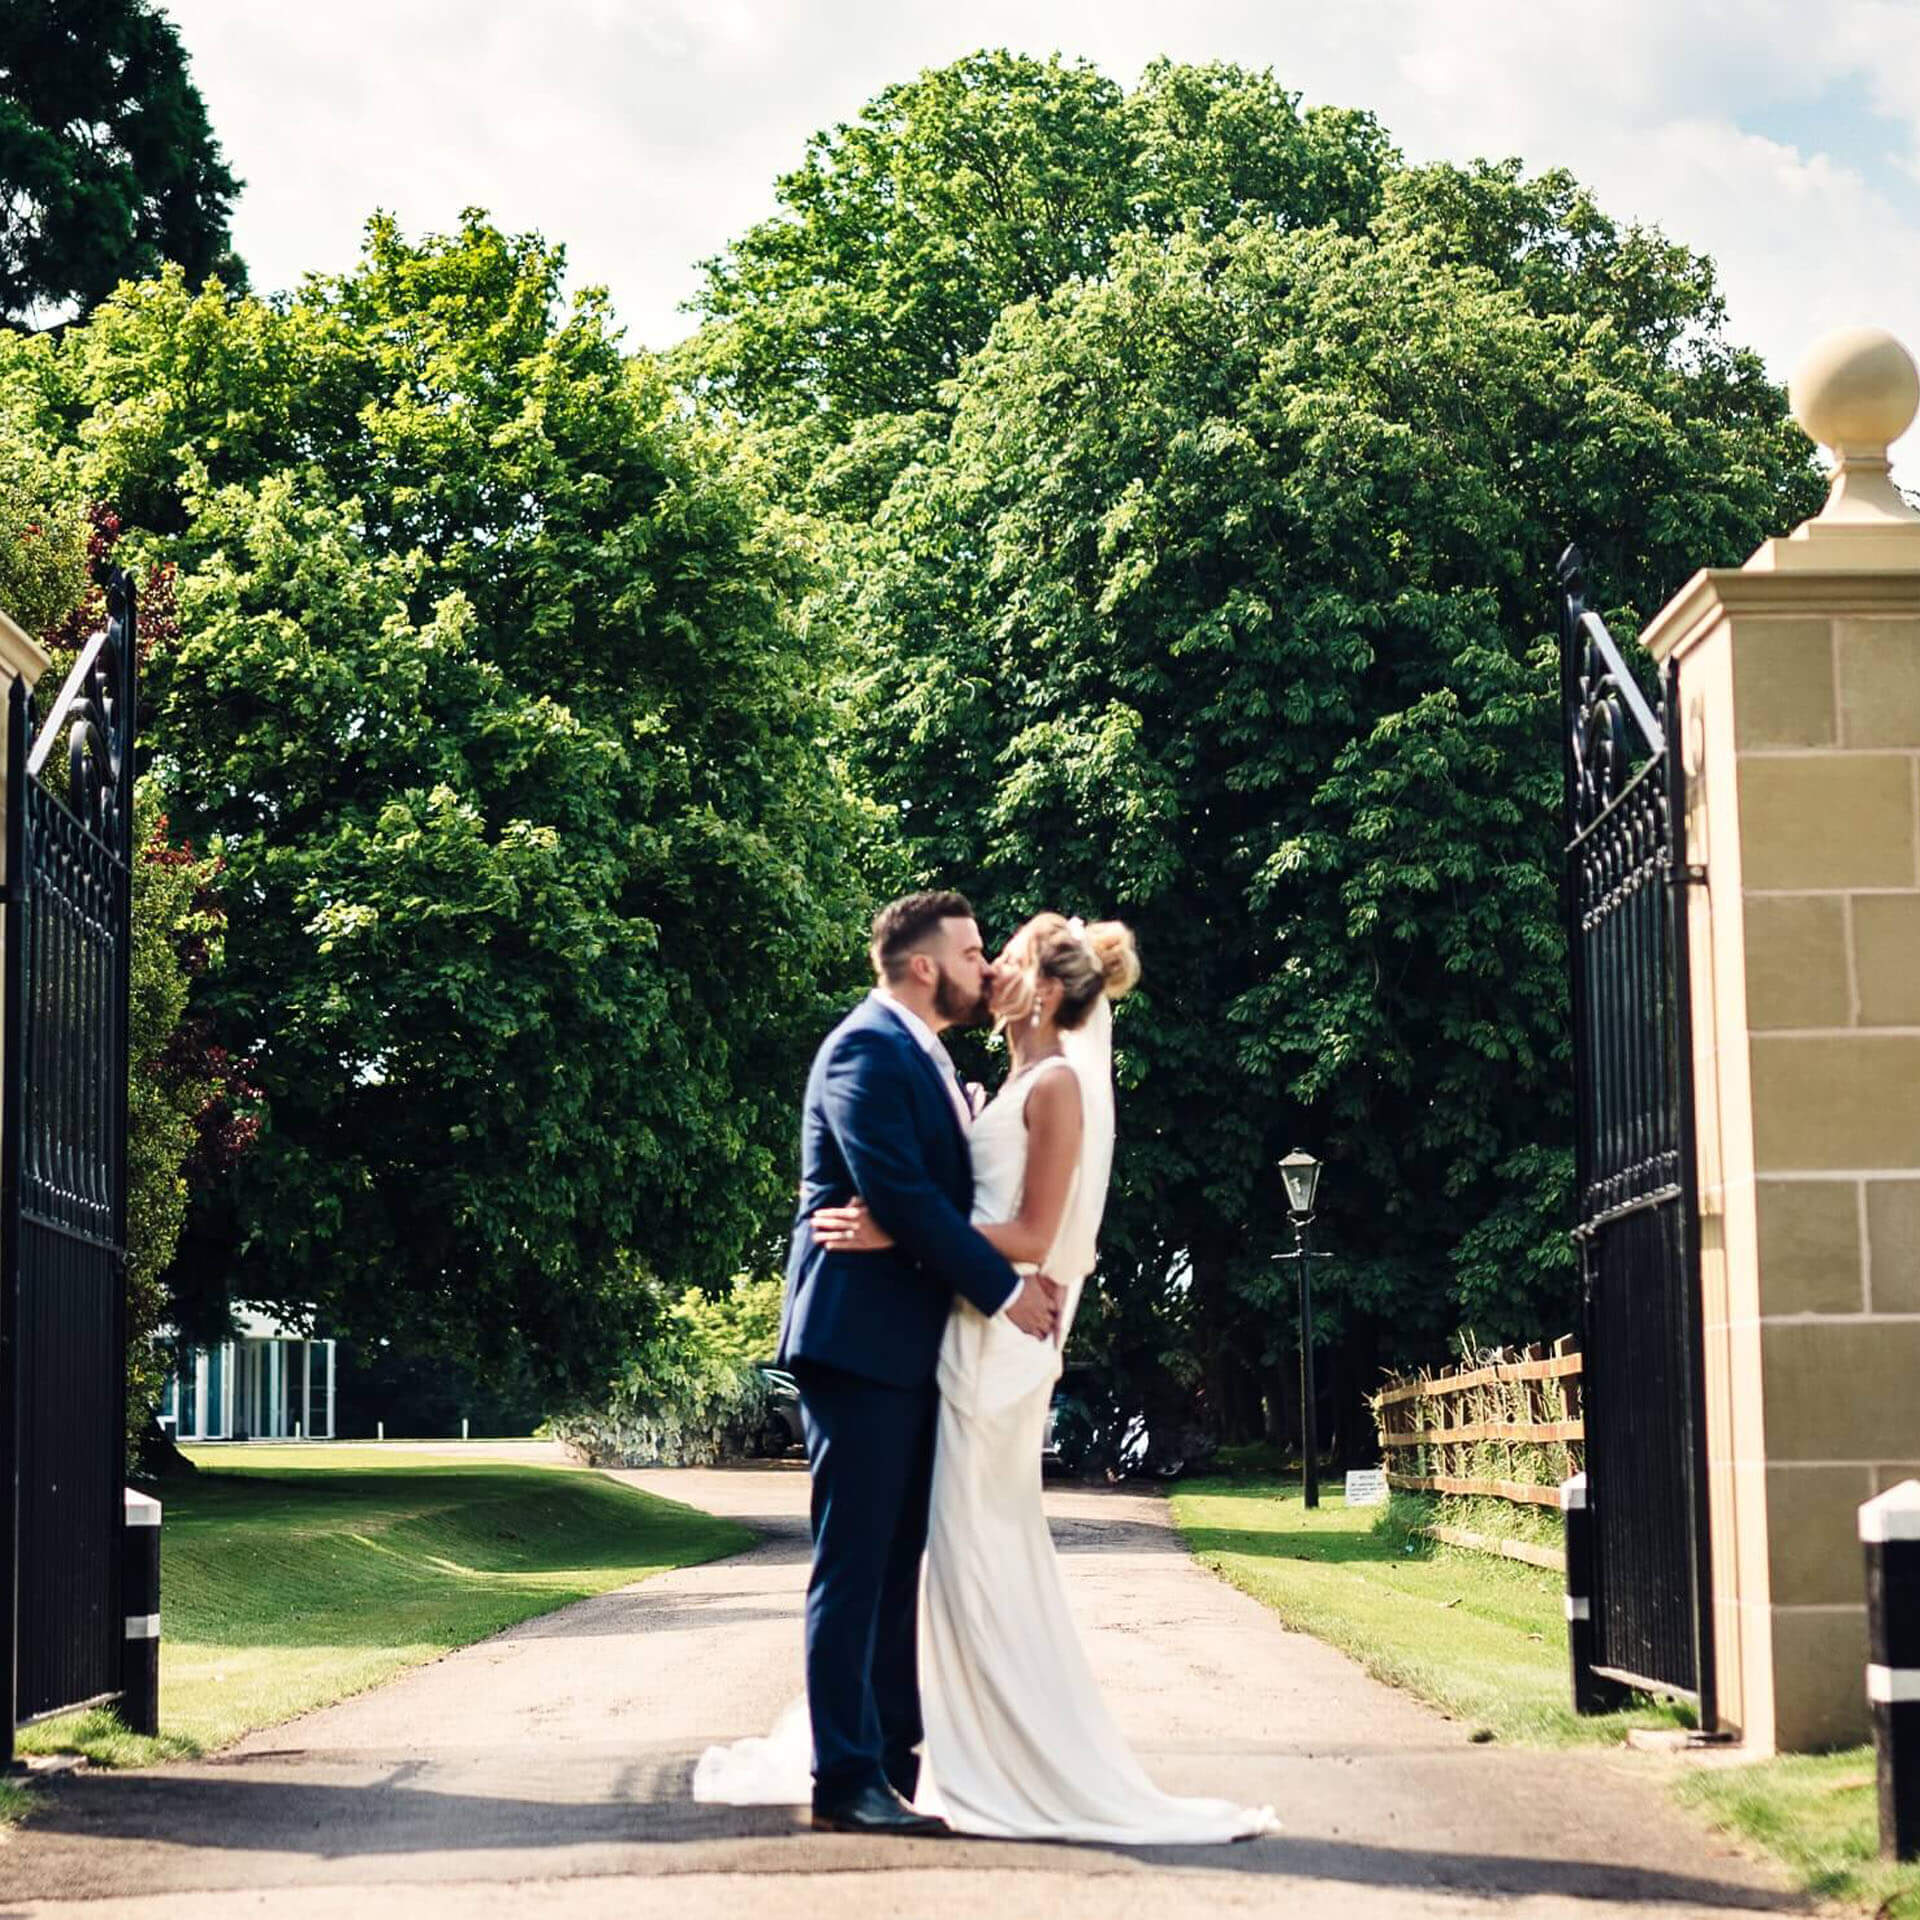 Couple getting married at Tern Hill Hall